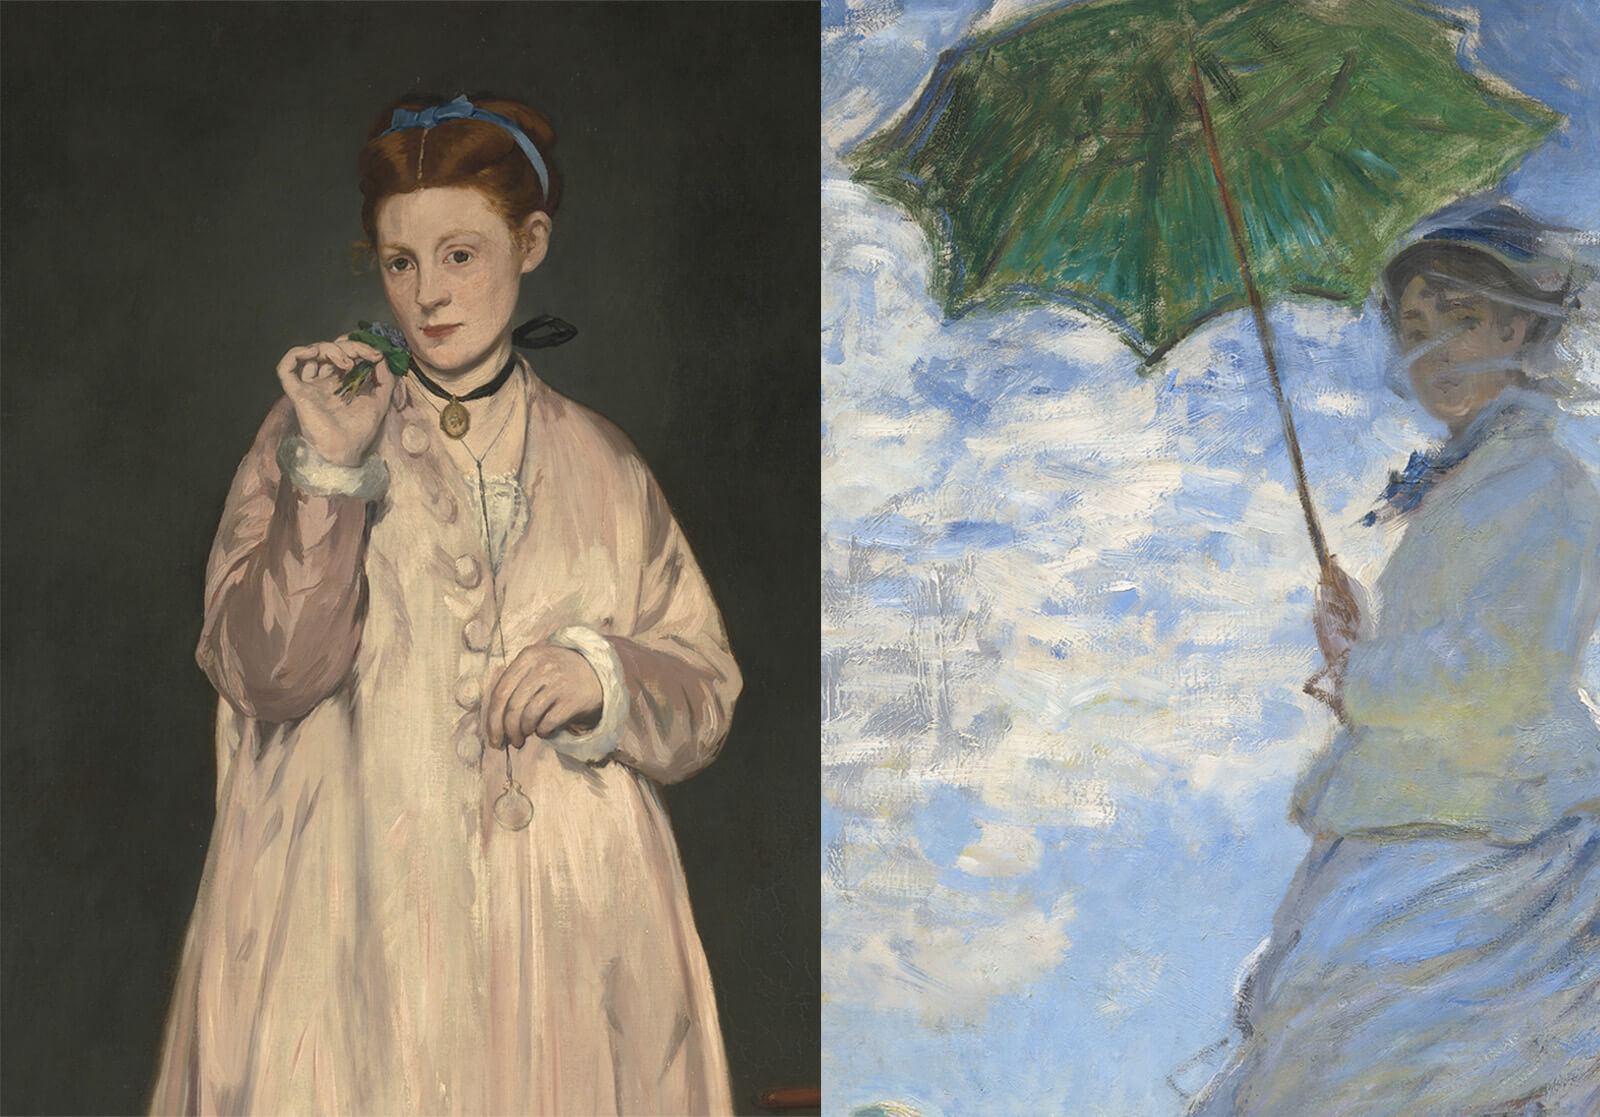 Left, a woman in a white coat with large buttons, wearing a blue hair ribbon and a black ribbon choker. Right, a woman in white jacket and skirt holds a green umbrella, backlit by a partly cloudy sky.